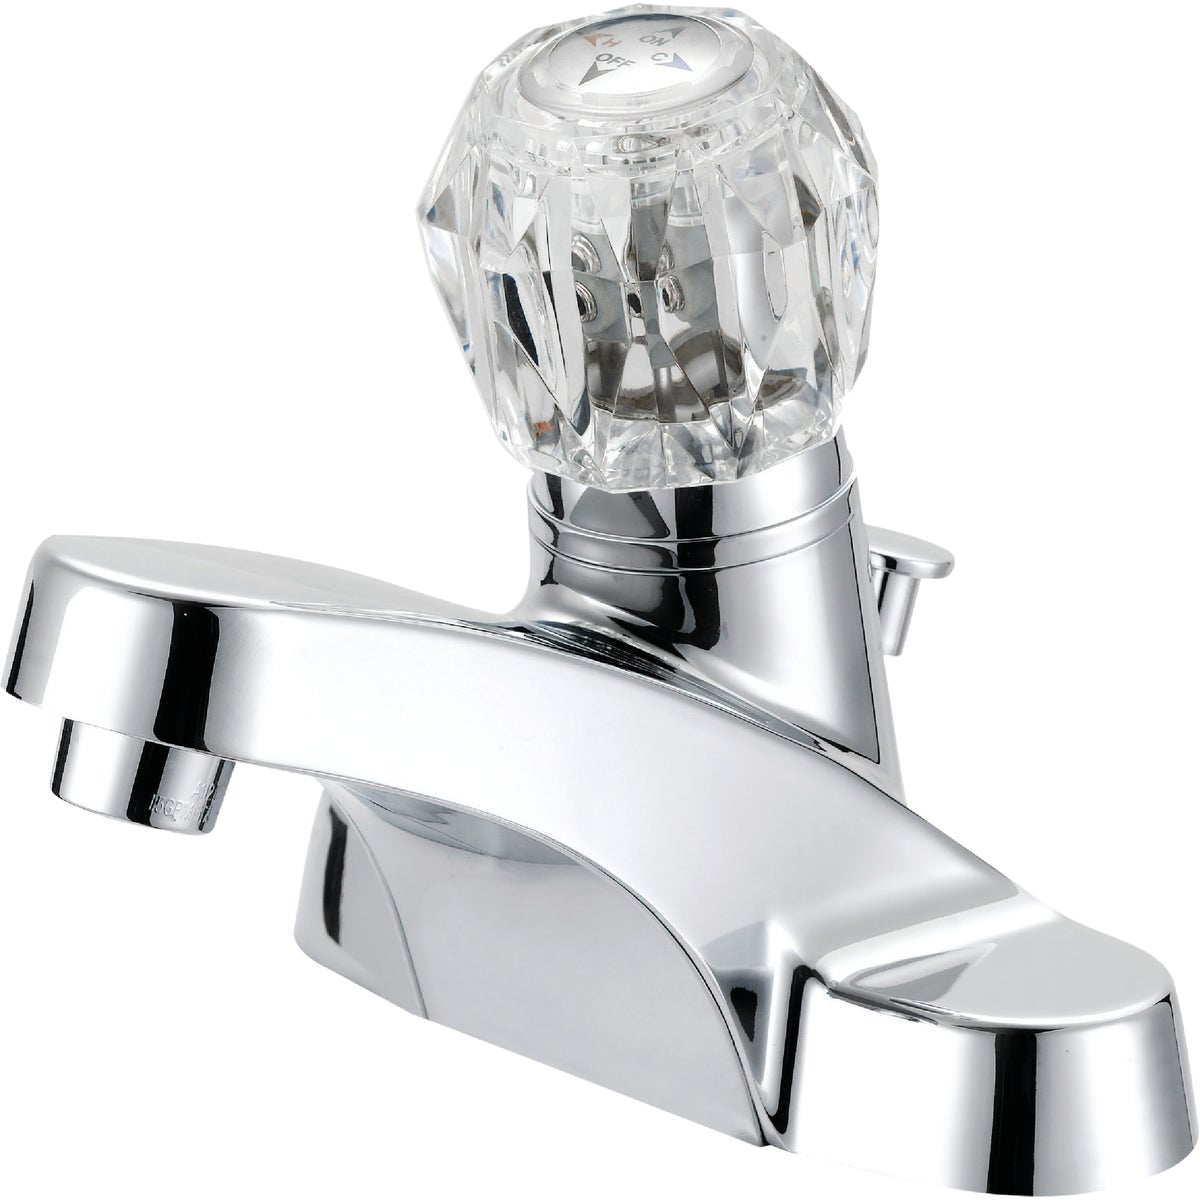 CHR LAV FAUCET W/POP UP - F4510009CP-JPA3 by Globe Union